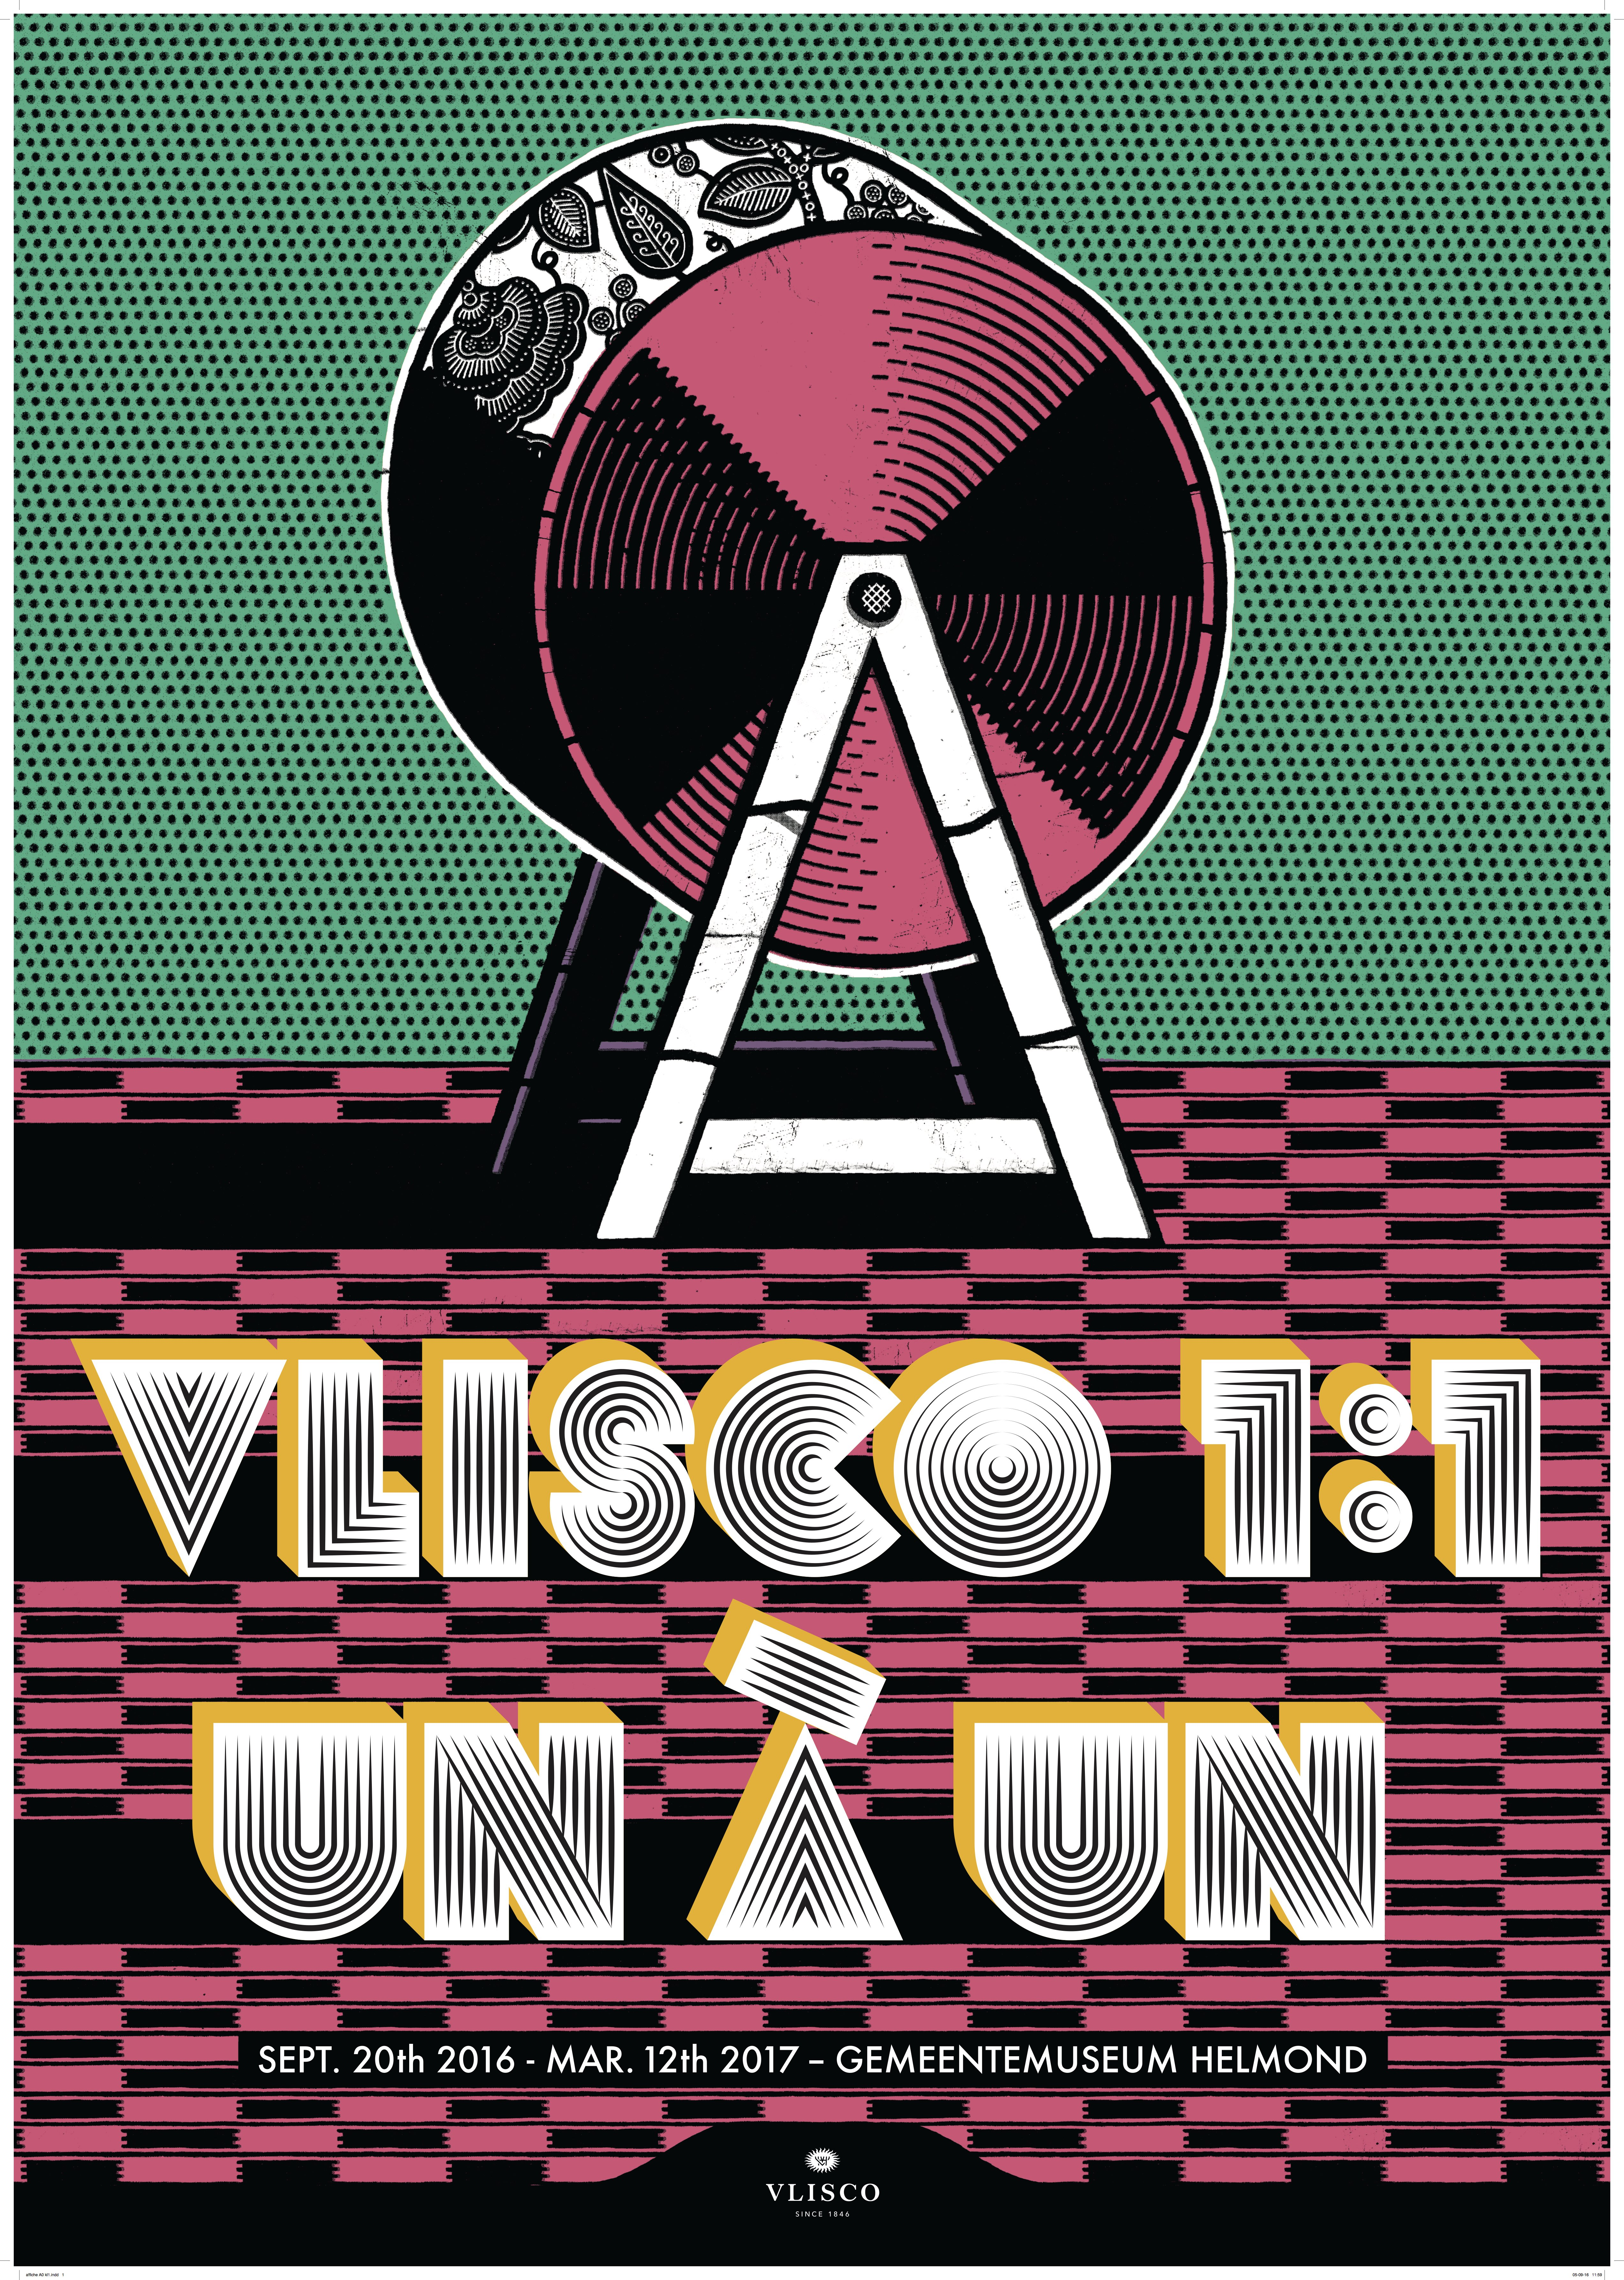 affiche-vlisco-a0-stelling-1